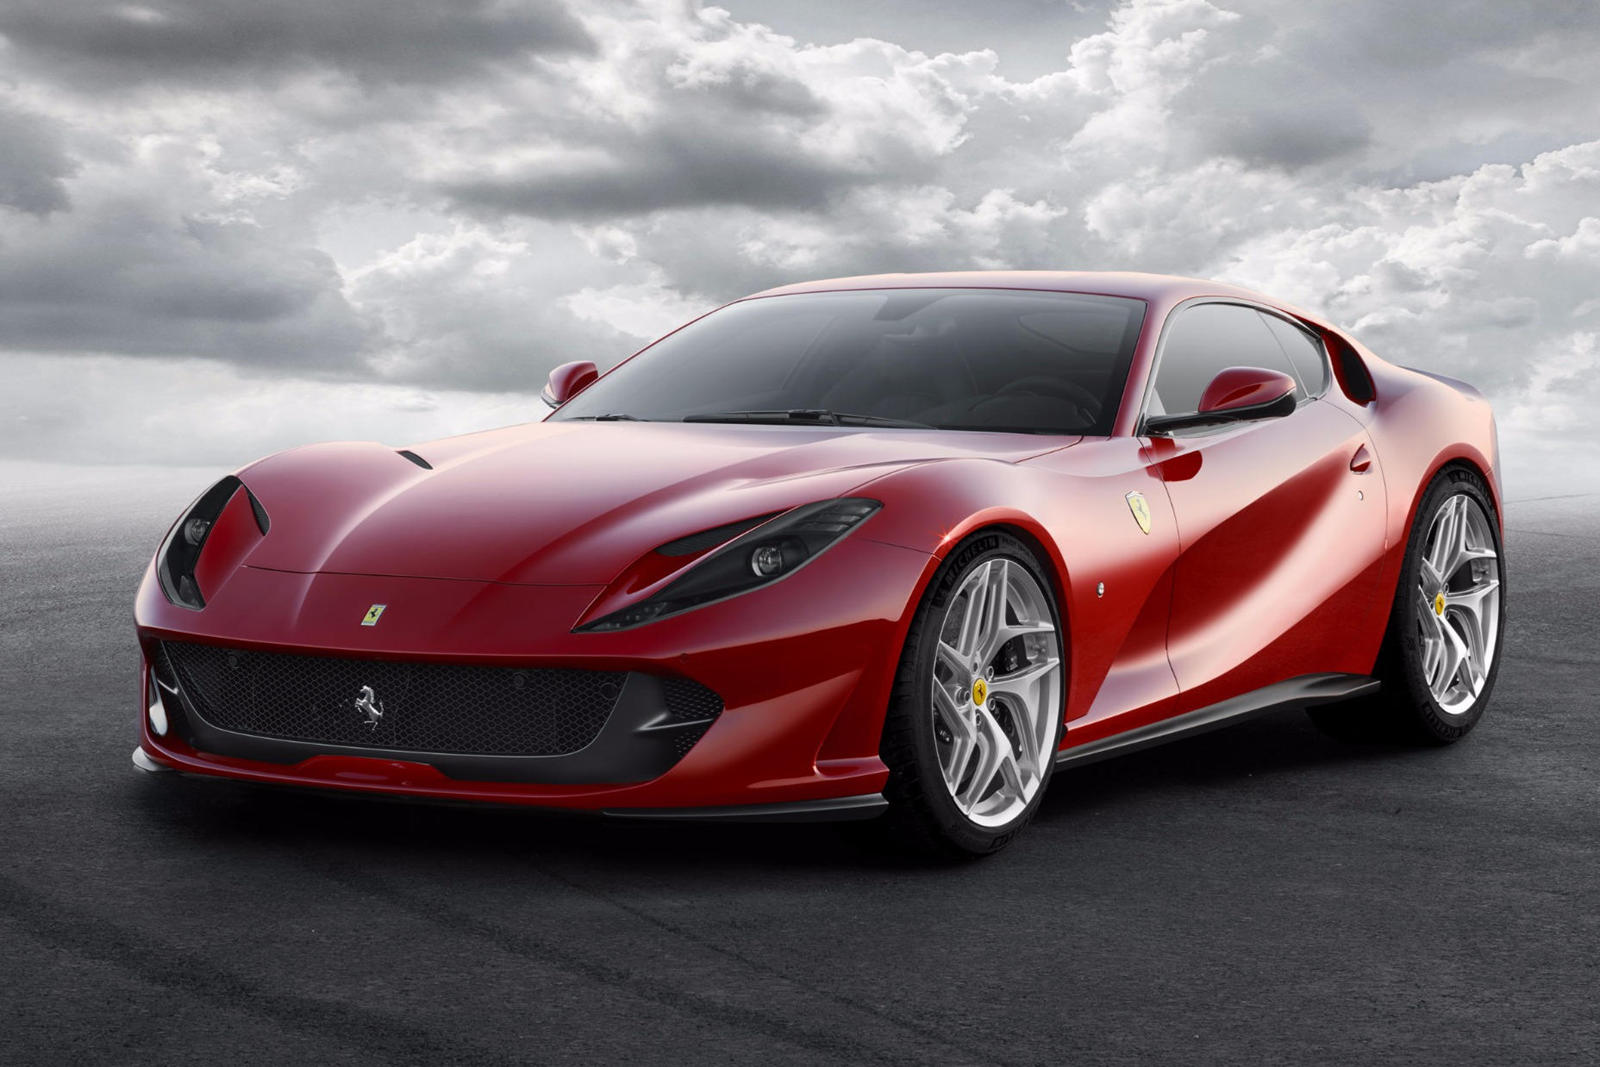 Delightful Ferrari 812 Superfast Coupe